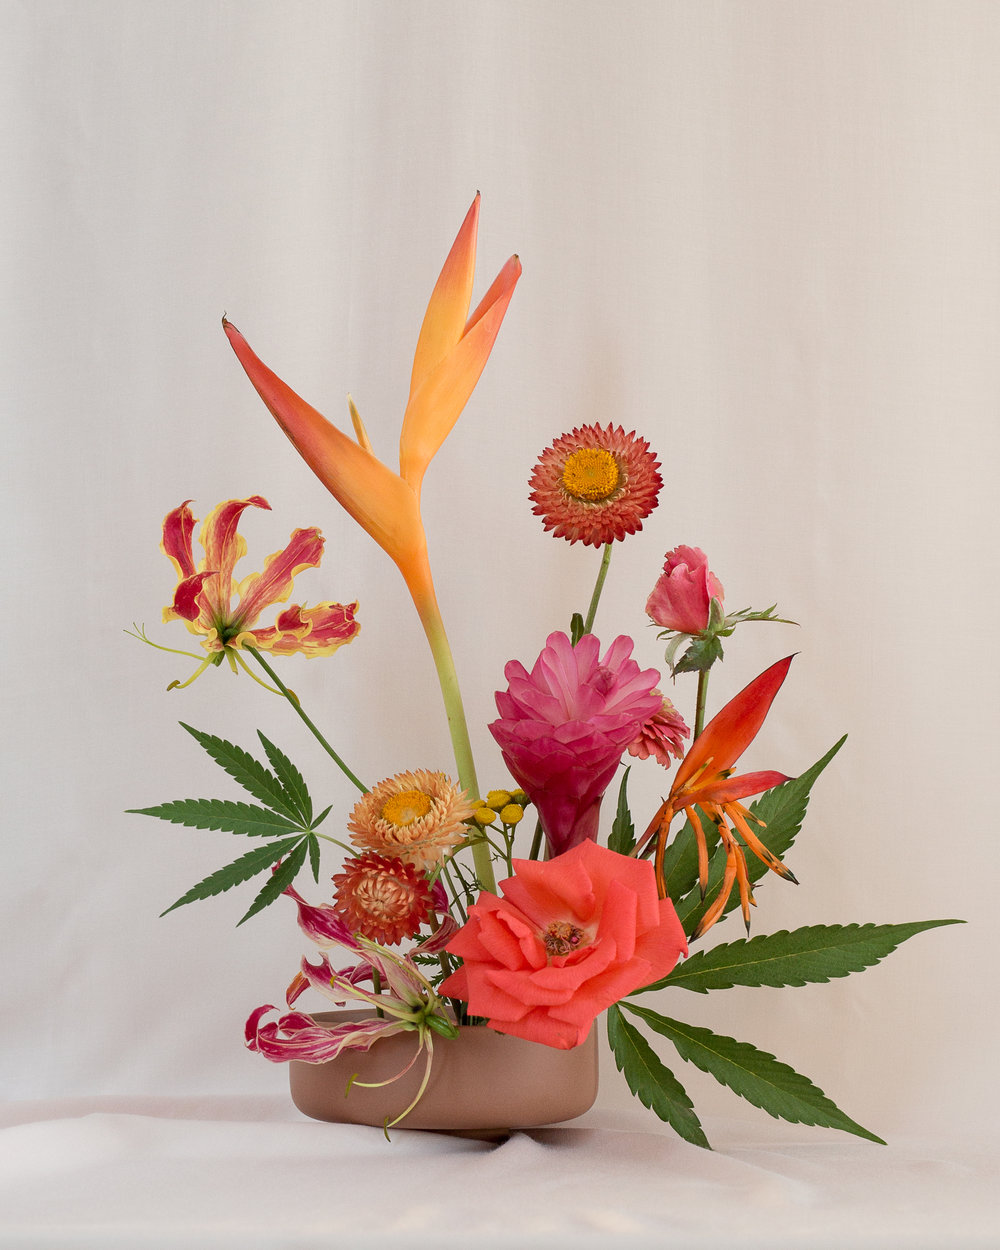 Seeking Arrangement — Floral Design by Amy Merrick, Photo by Anja Charbonneau. From  Broccoli  Issue 01.